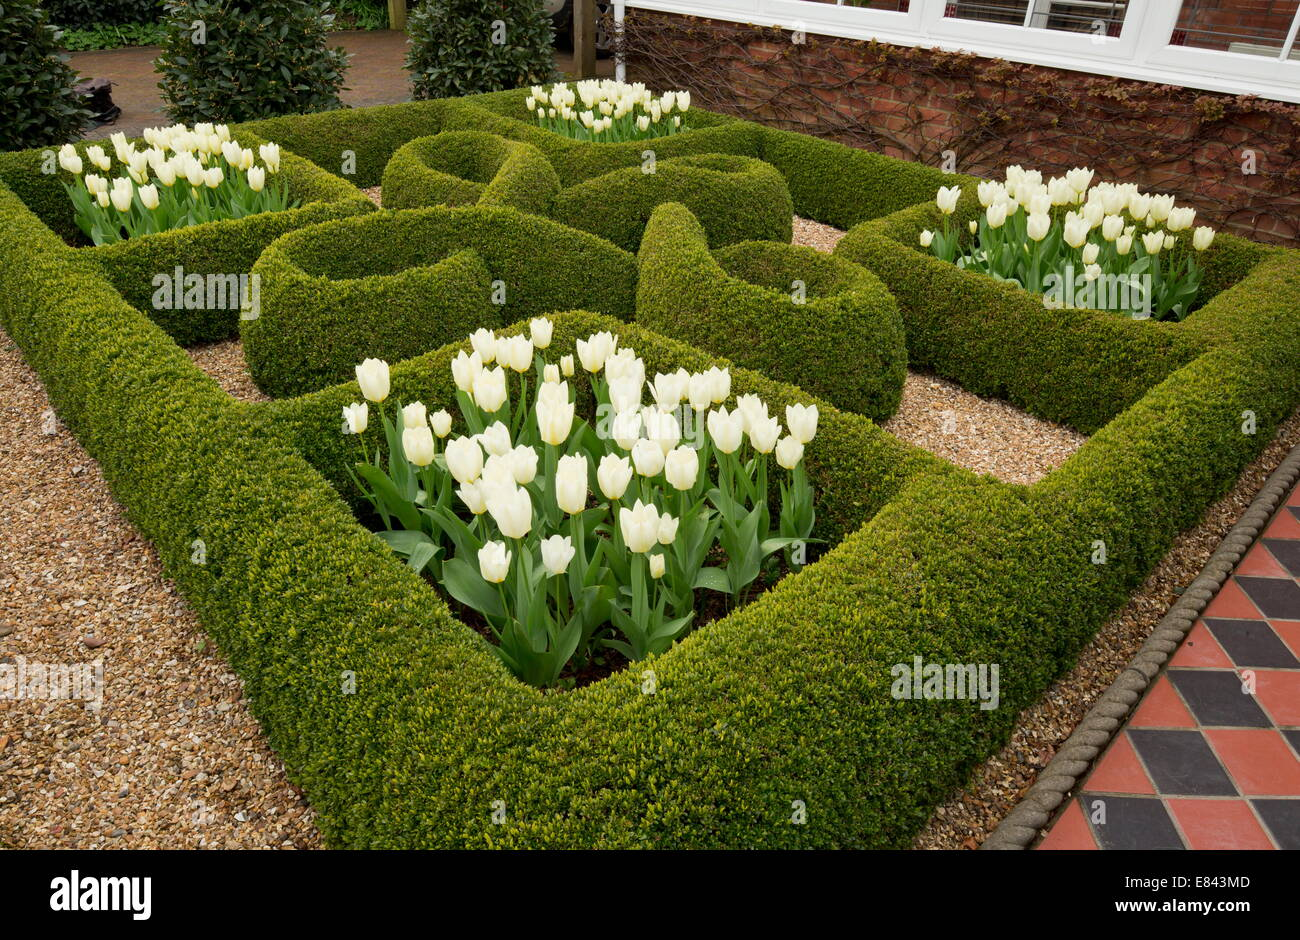 Knot garden with box hedges and white tulips in a private for Garden hedge designs